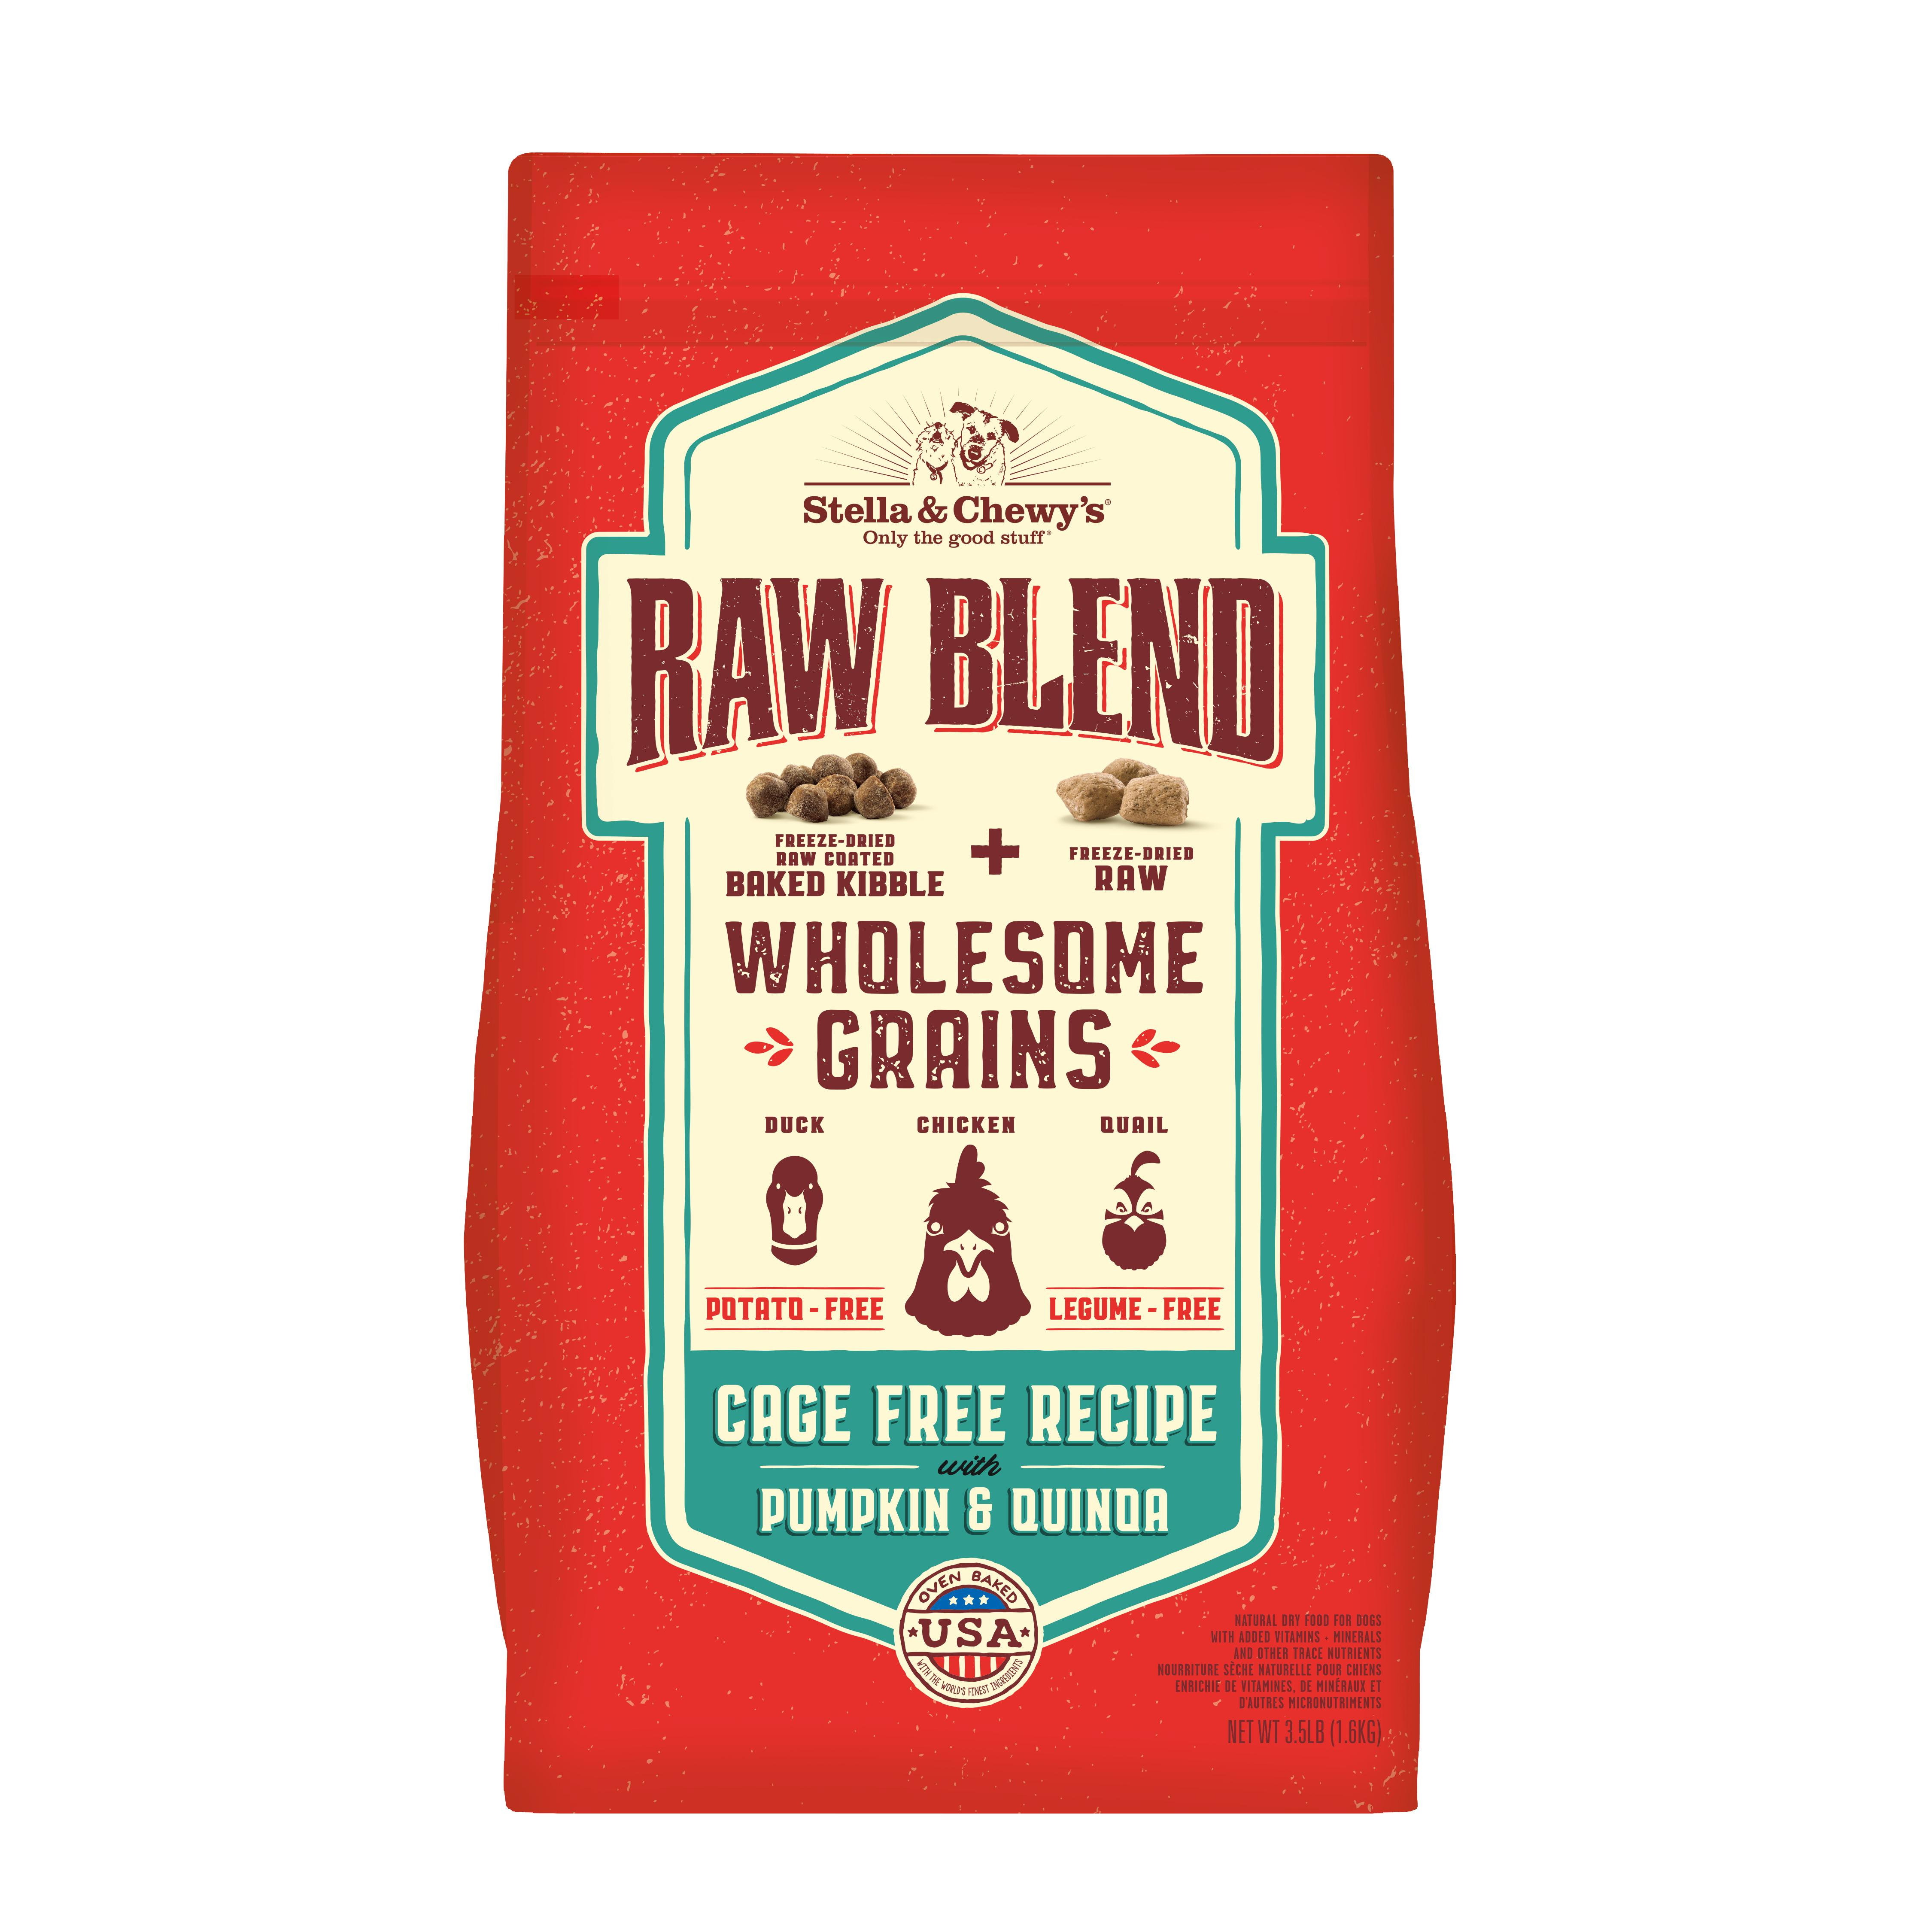 Stella & Chewy'sRaw Blend Wholesome Grains Cage-Free Recipe with Pumpkin & Quinoa Dry Dog Food, 3.5-lb